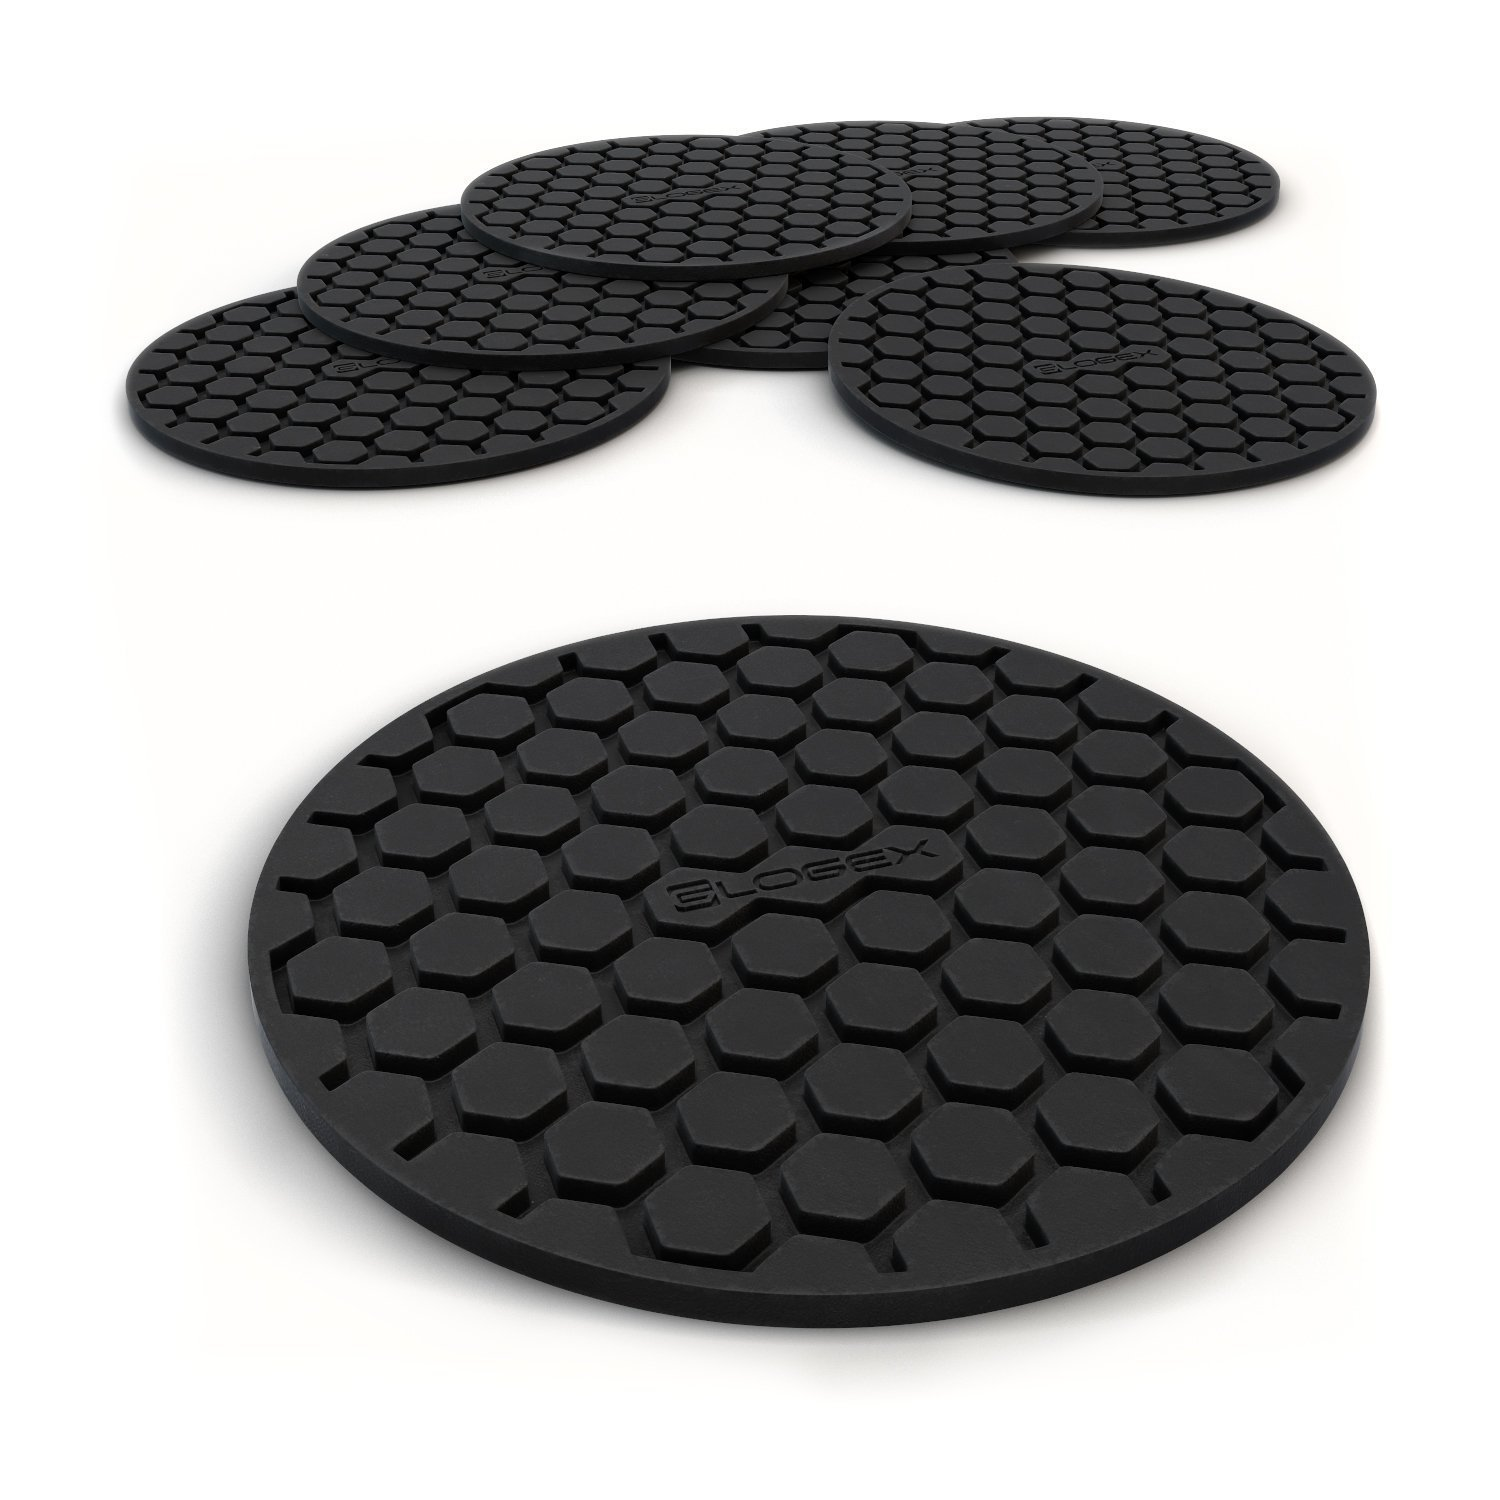 Glogex Black Silicone Drink Coaster Set of 8, Prevents Furniture and Tabletop Damages, Absorbs Spills and Condensation